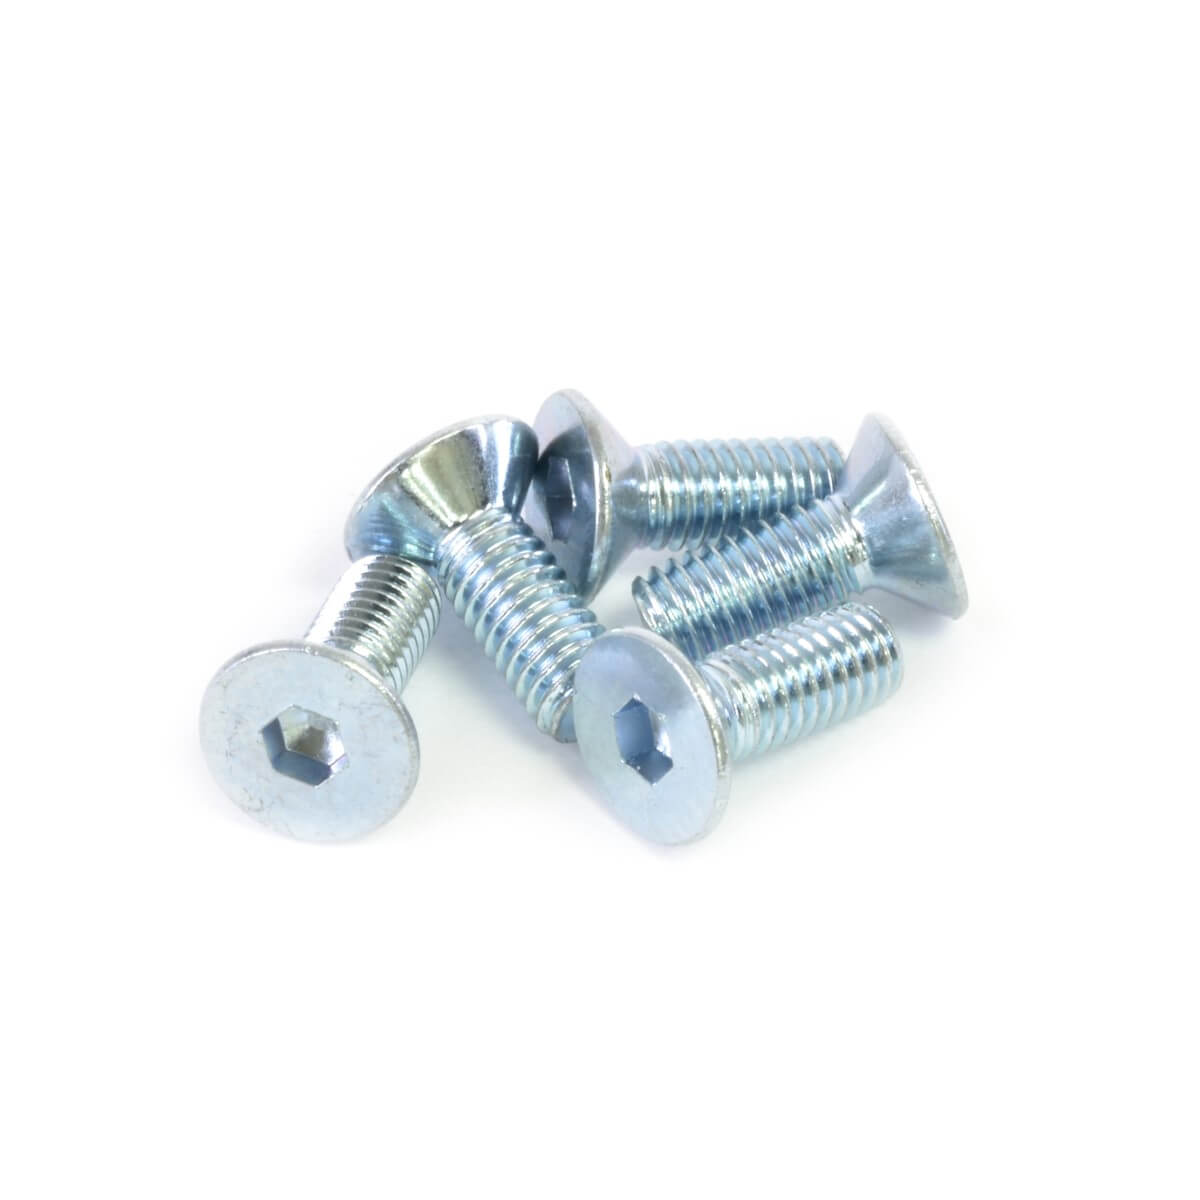 M3x8 Flat Head Derailleur Hanger Screw